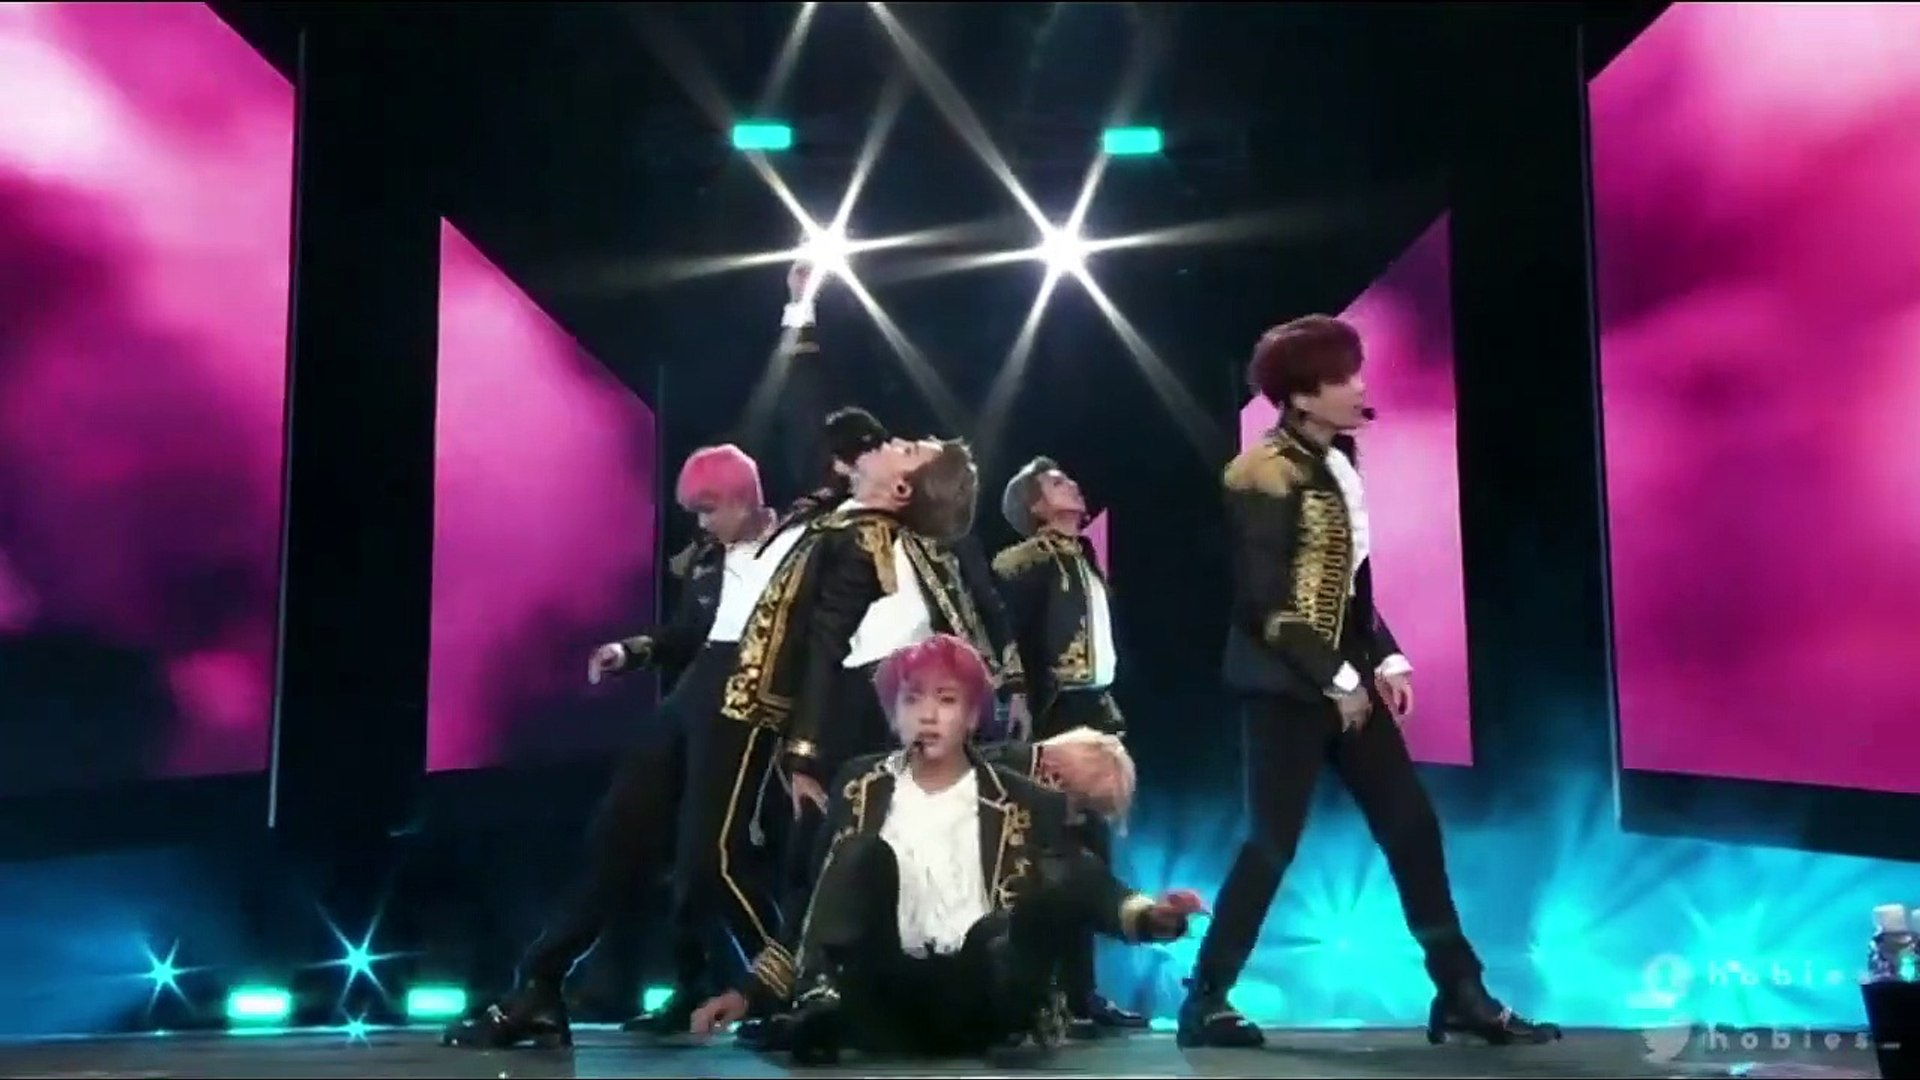 [ENG SUB] BTS LOVE YOURSELF SEOUL DVD - Full Concert (DISC 1 / Part 1)